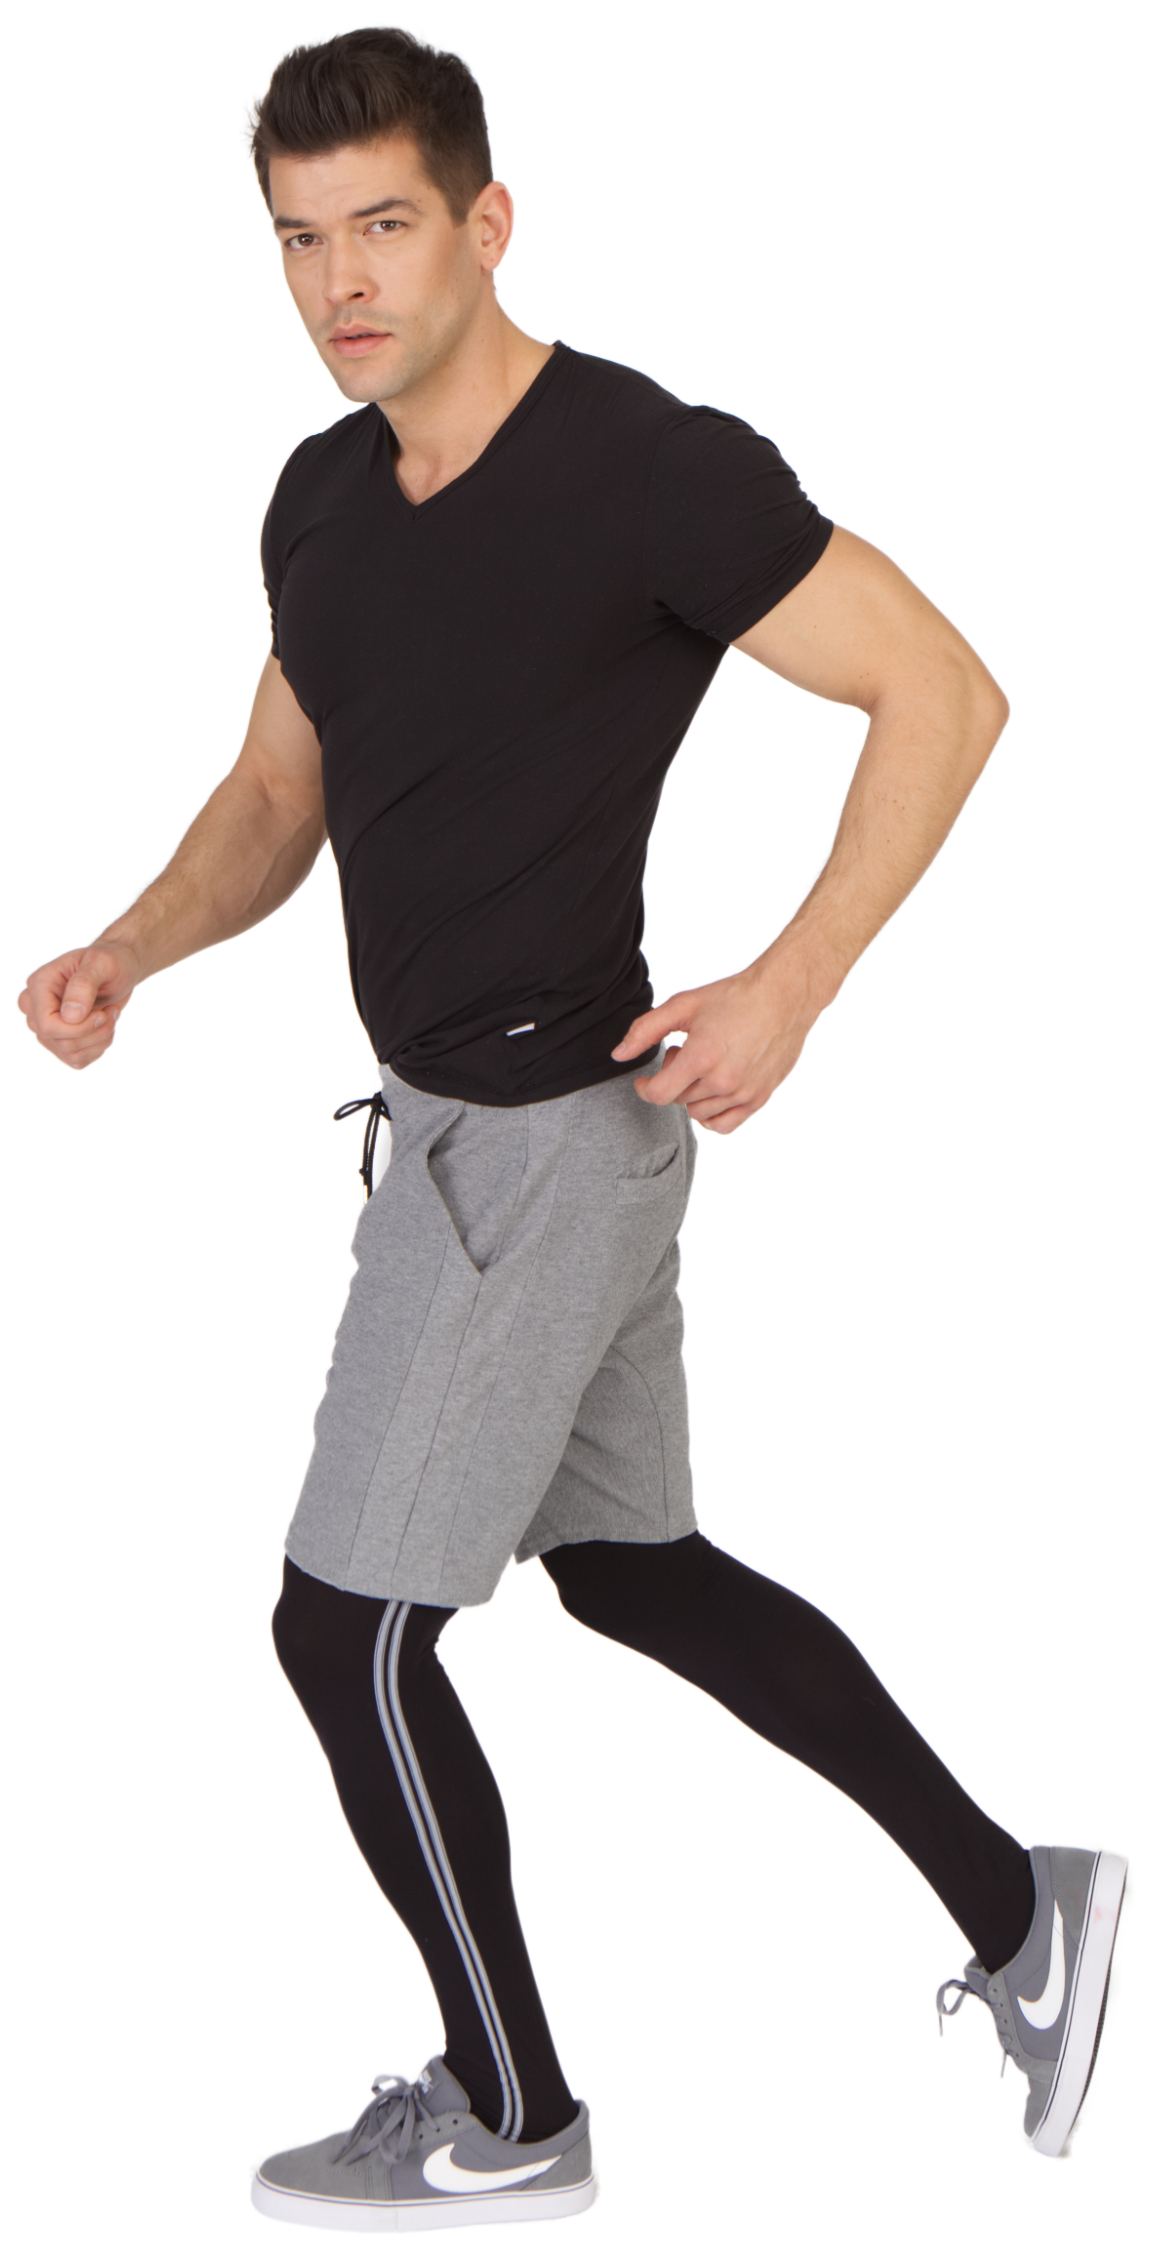 Buy the Adrian Sport tights for men at Activskin.com!